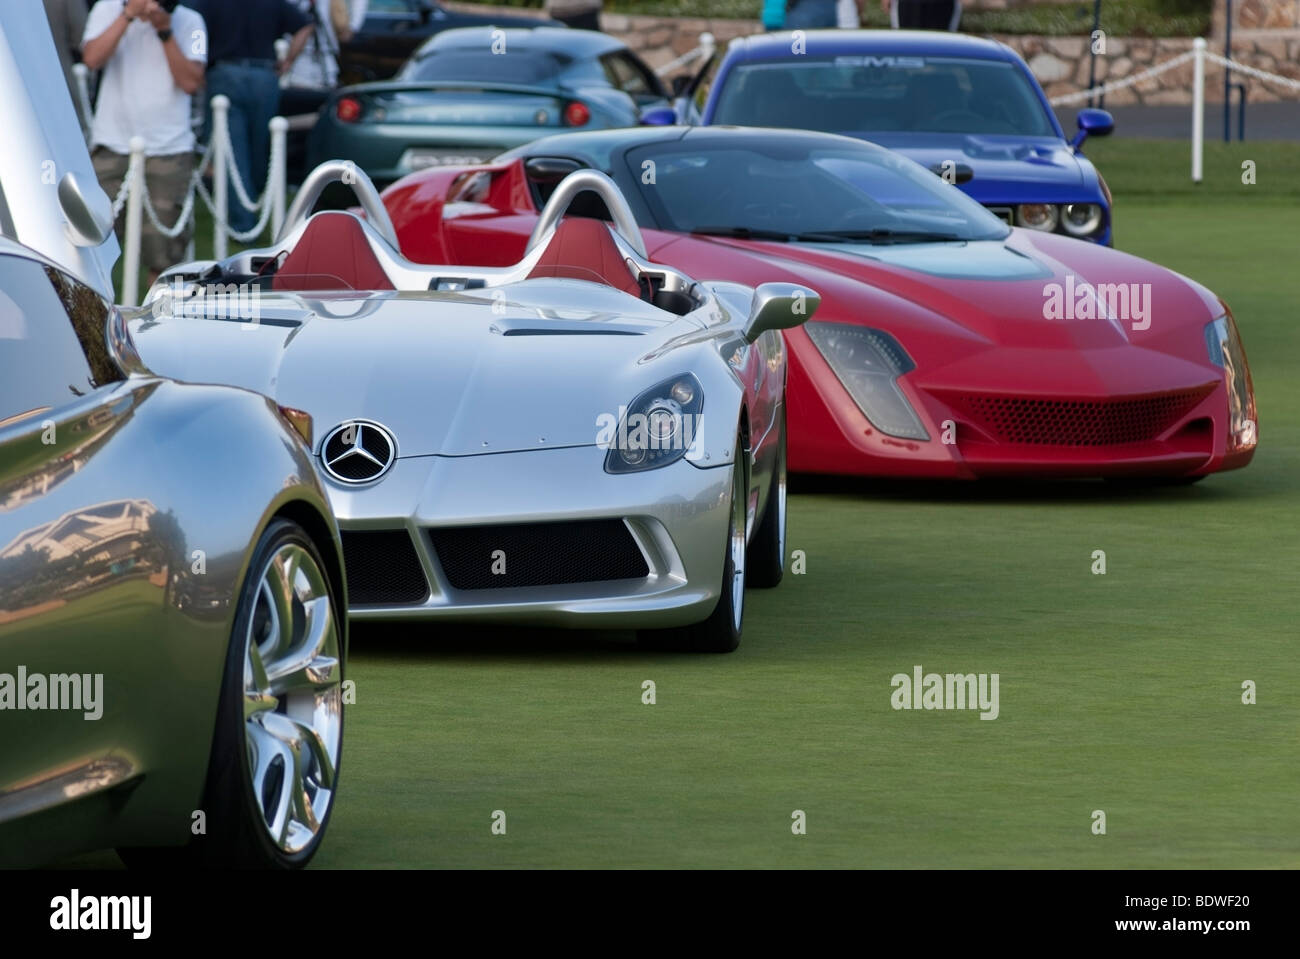 Mercedes-Benz SLR McLaren Roadster and 'Concept Cars' in front of The Lodge at Pebble Beach during the Concours - Stock Image